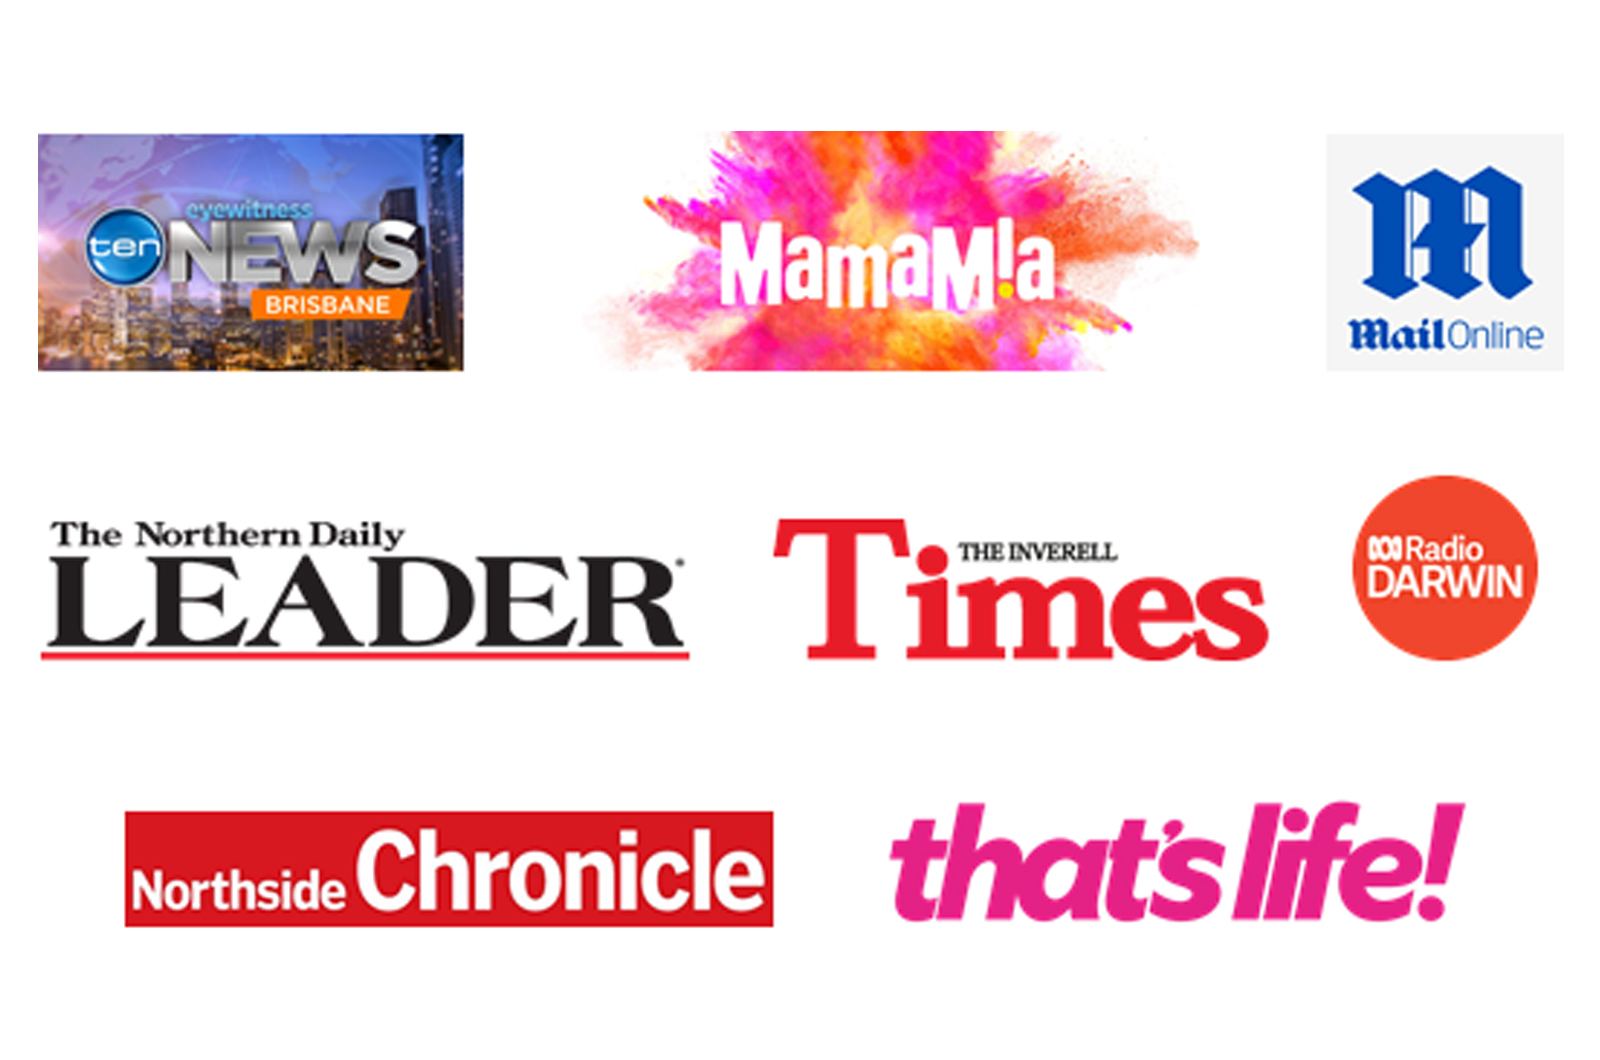 Some of the media attention our project has received!